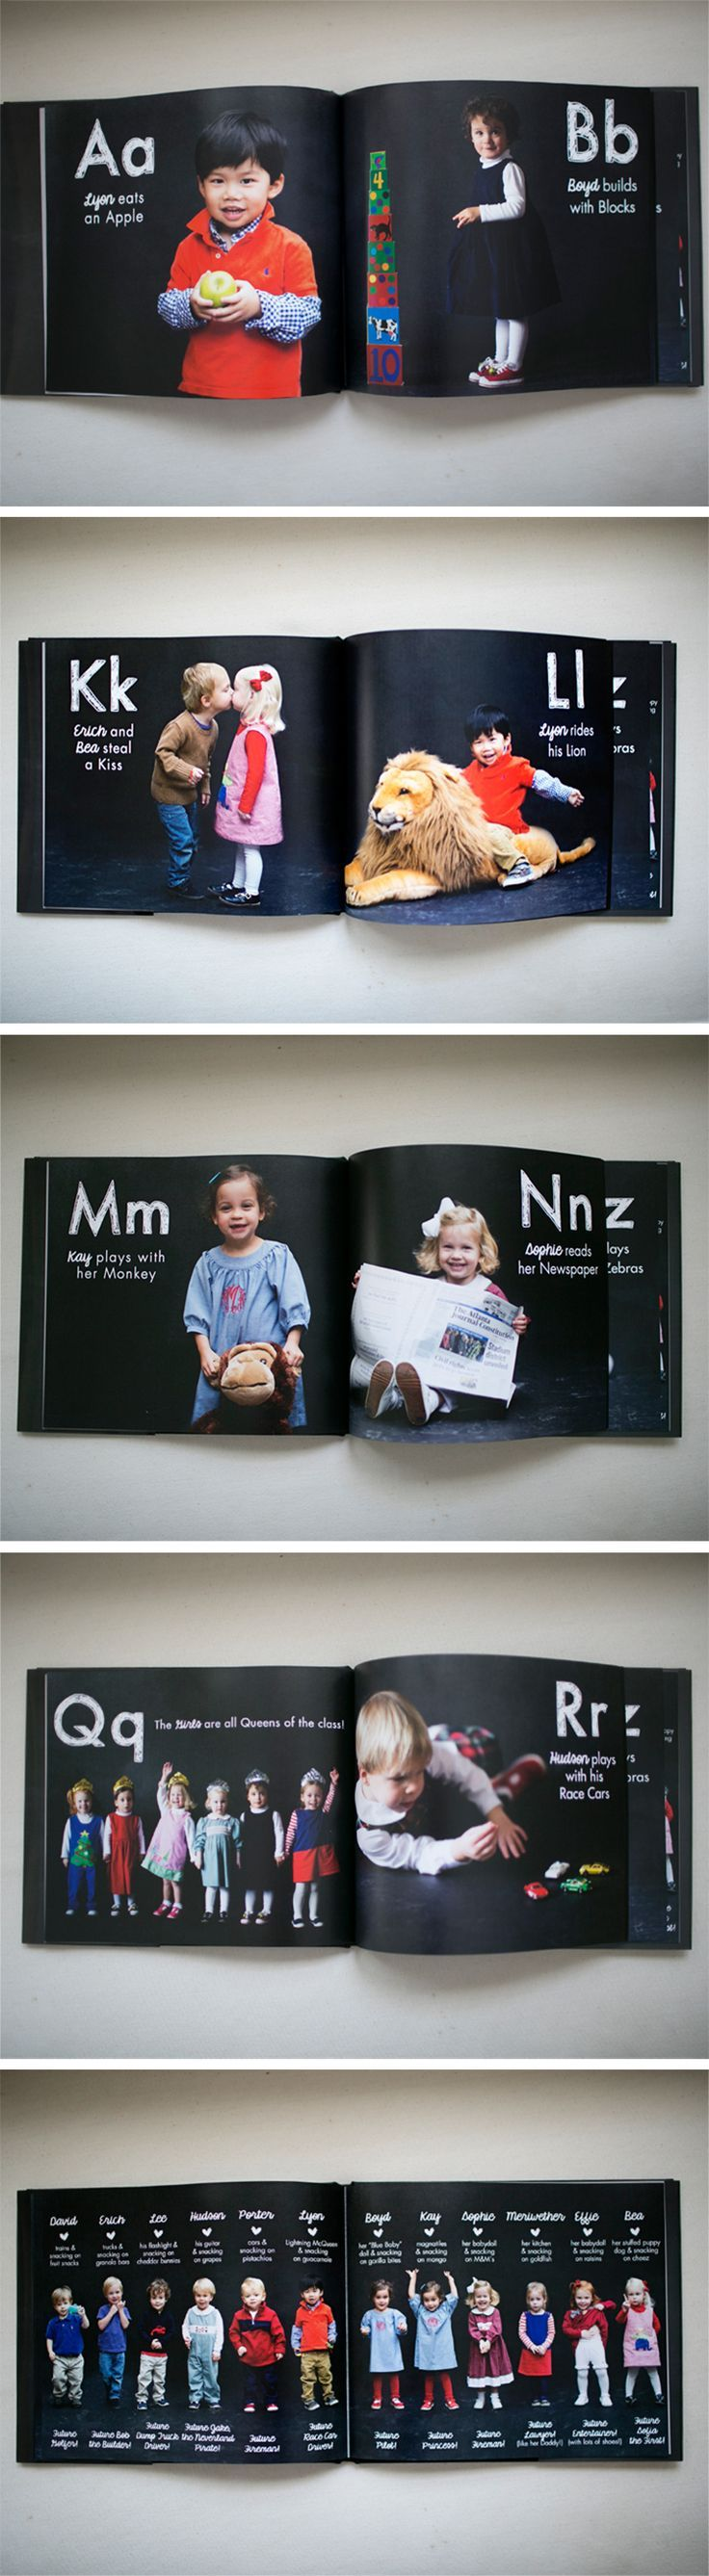 adorable school album--groups like shutterfly often offer free 8x8 albums, just pay shipping